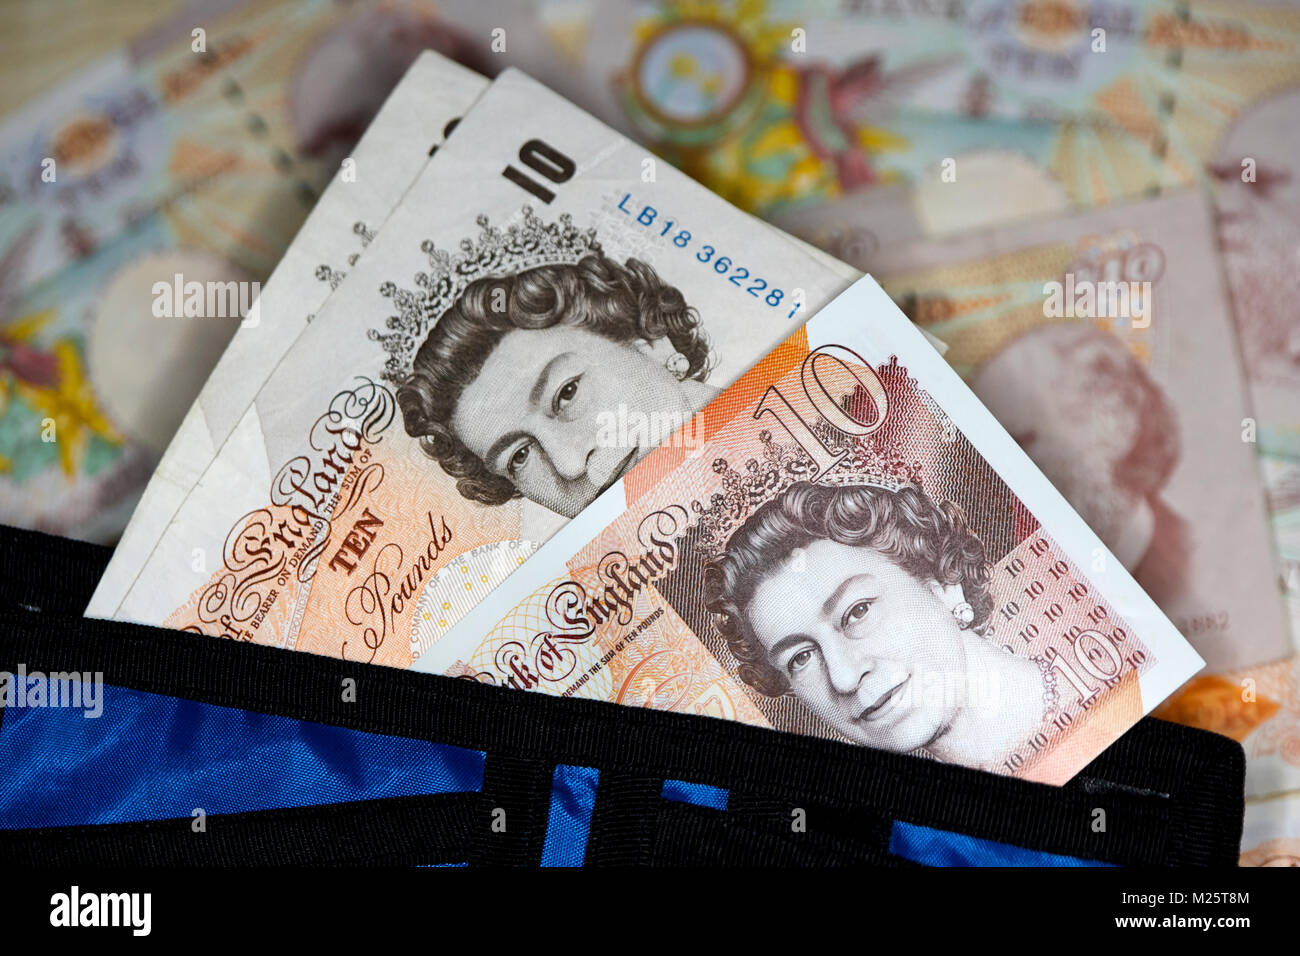 new polymer 10 quid notes with soon to be phased out paper 10 pound notes in a wallet in the uk - Stock Image